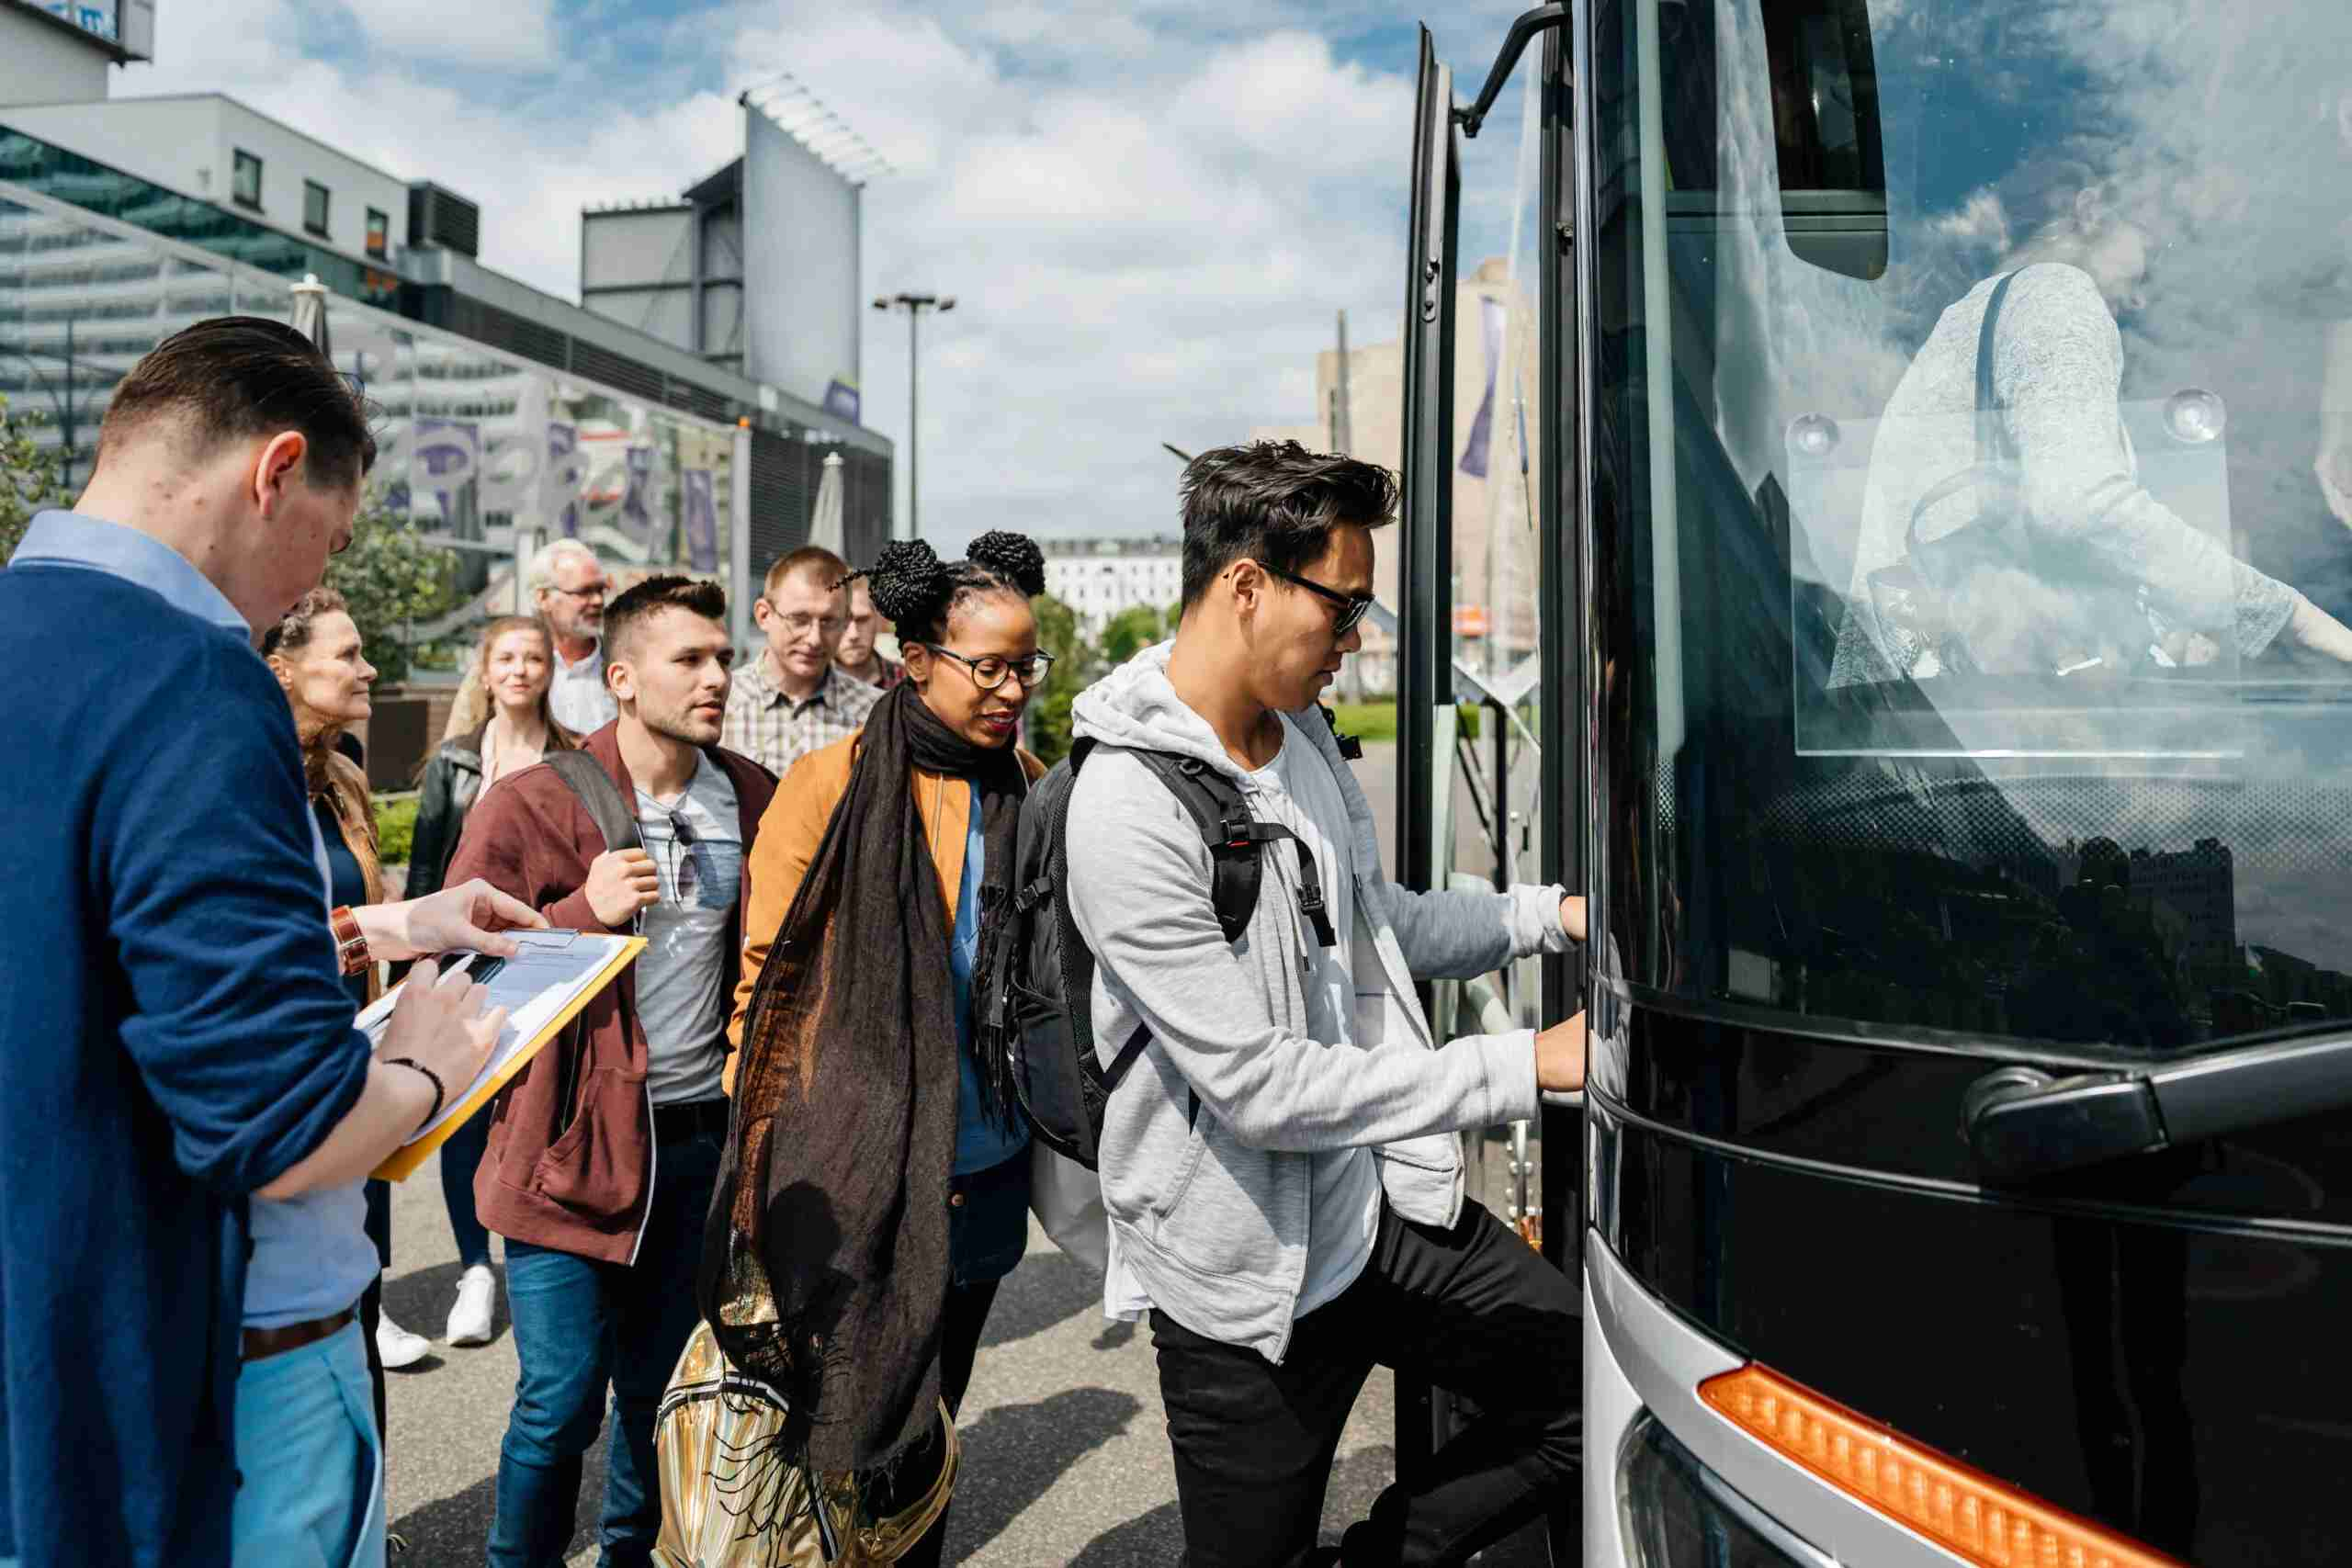 A bus is being boarded by a group of travellers, ready to begin their journey.